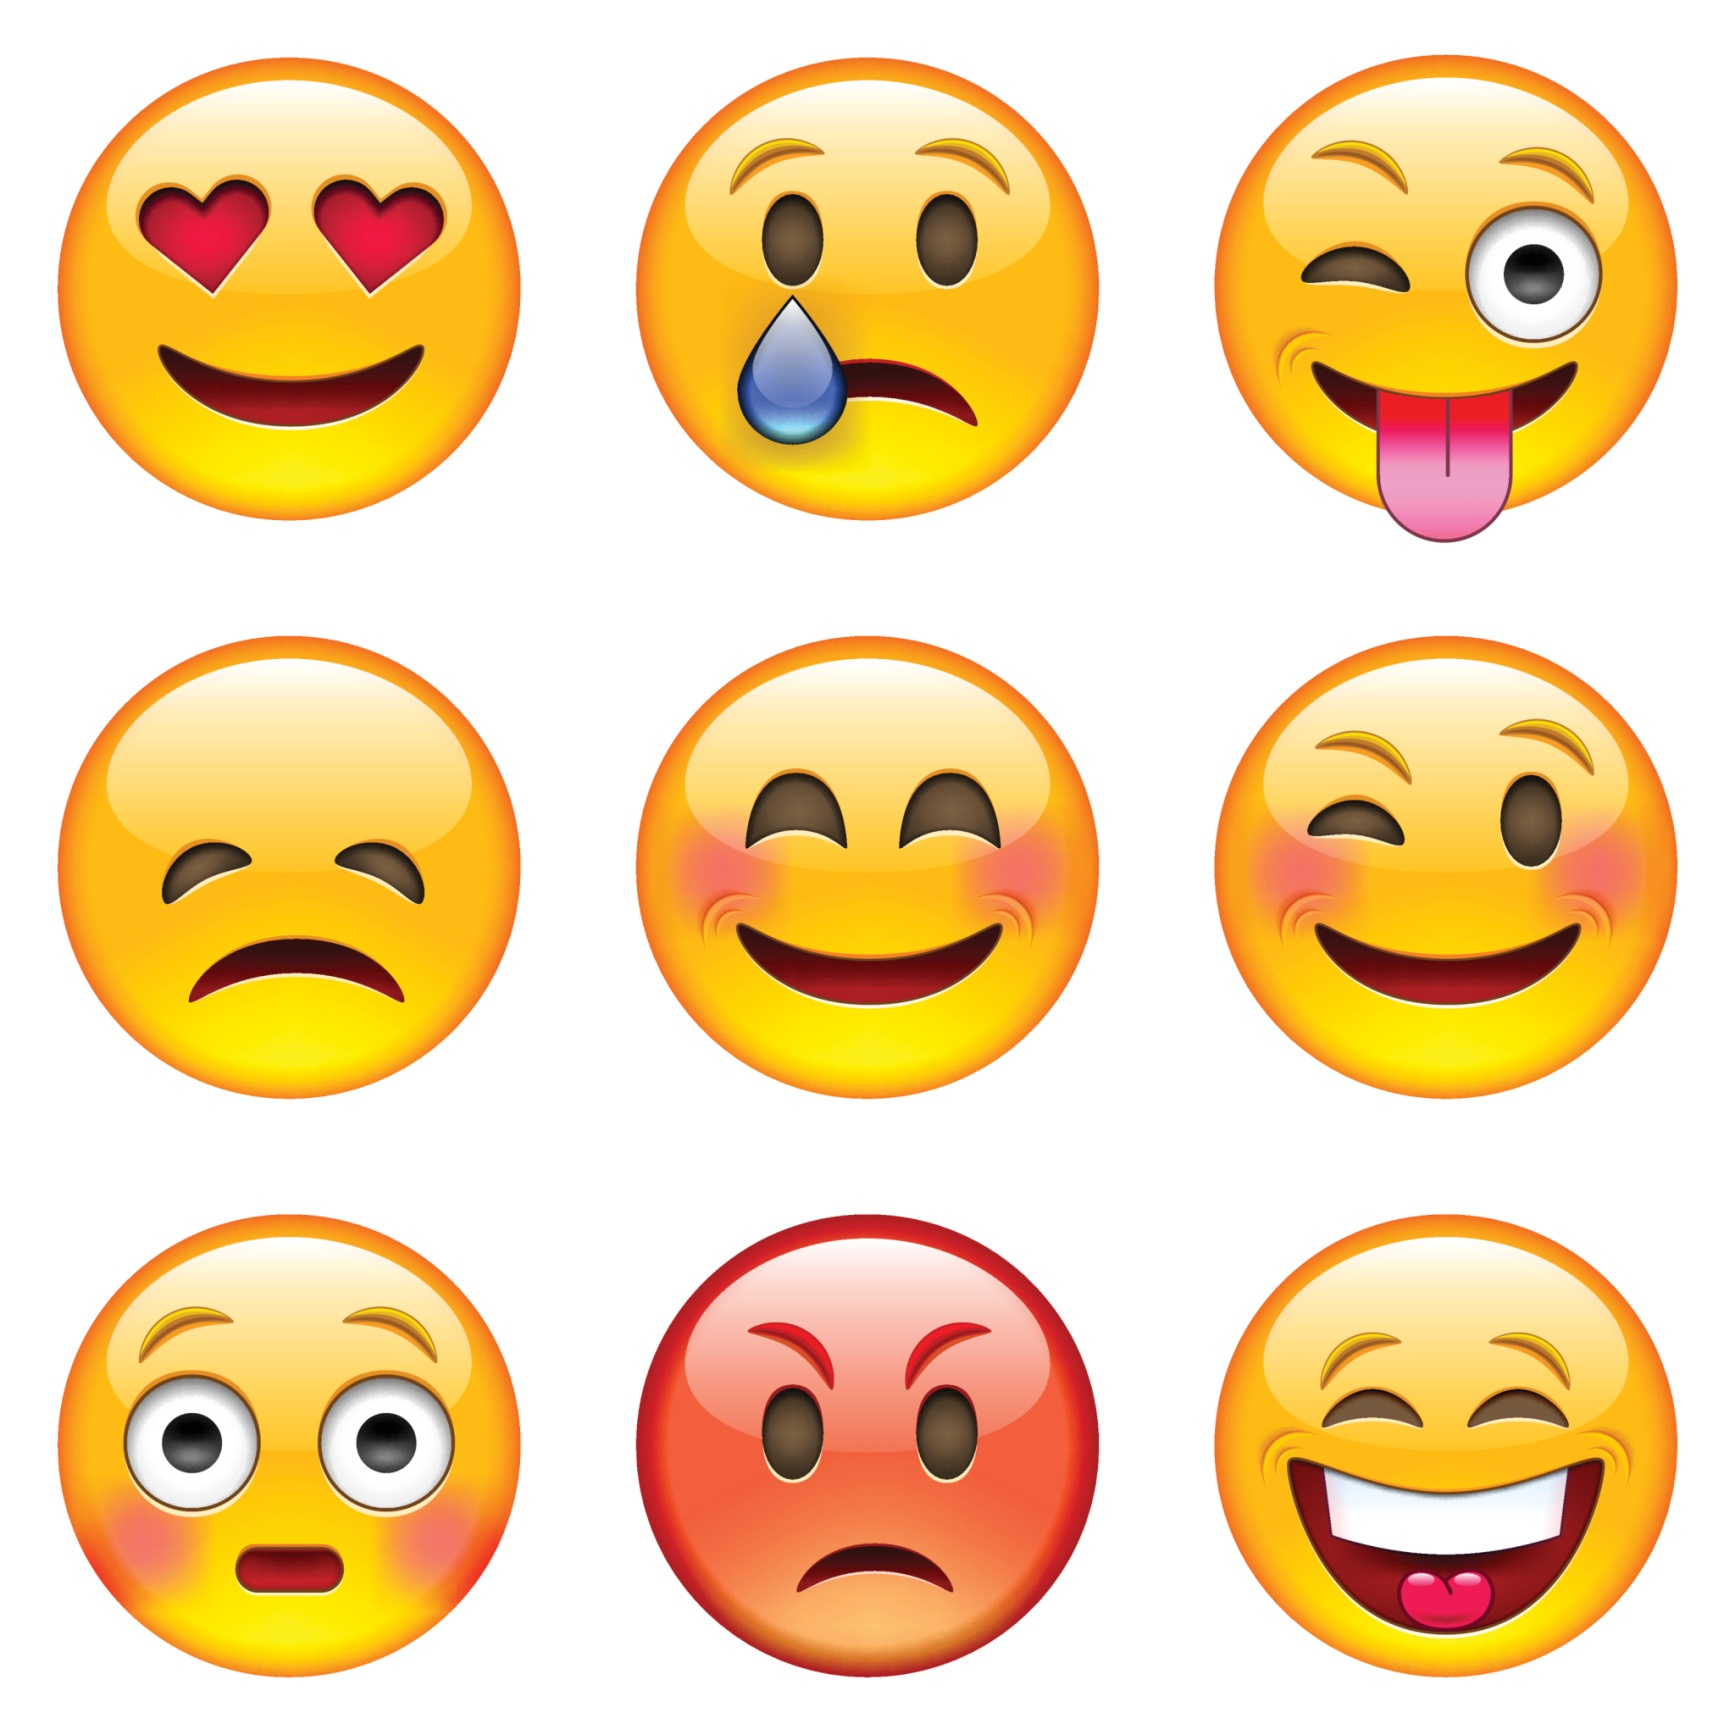 Emojis_are_taking_center_stage_in_million-dollar_marketing_campaigns.jpg